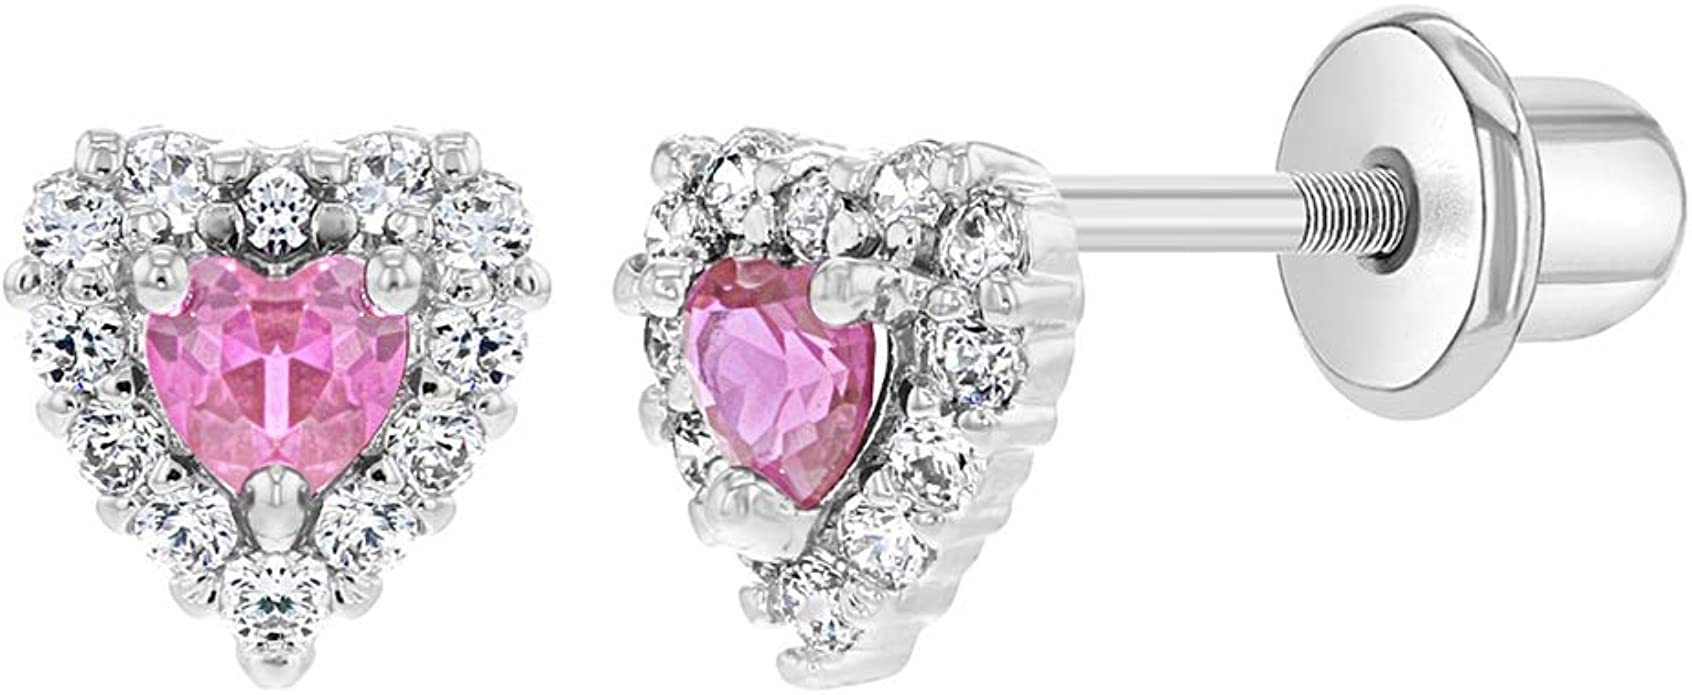 Details about  /Rhodium Plated Clear Crystal Heart Screw Back Earrings for Kids